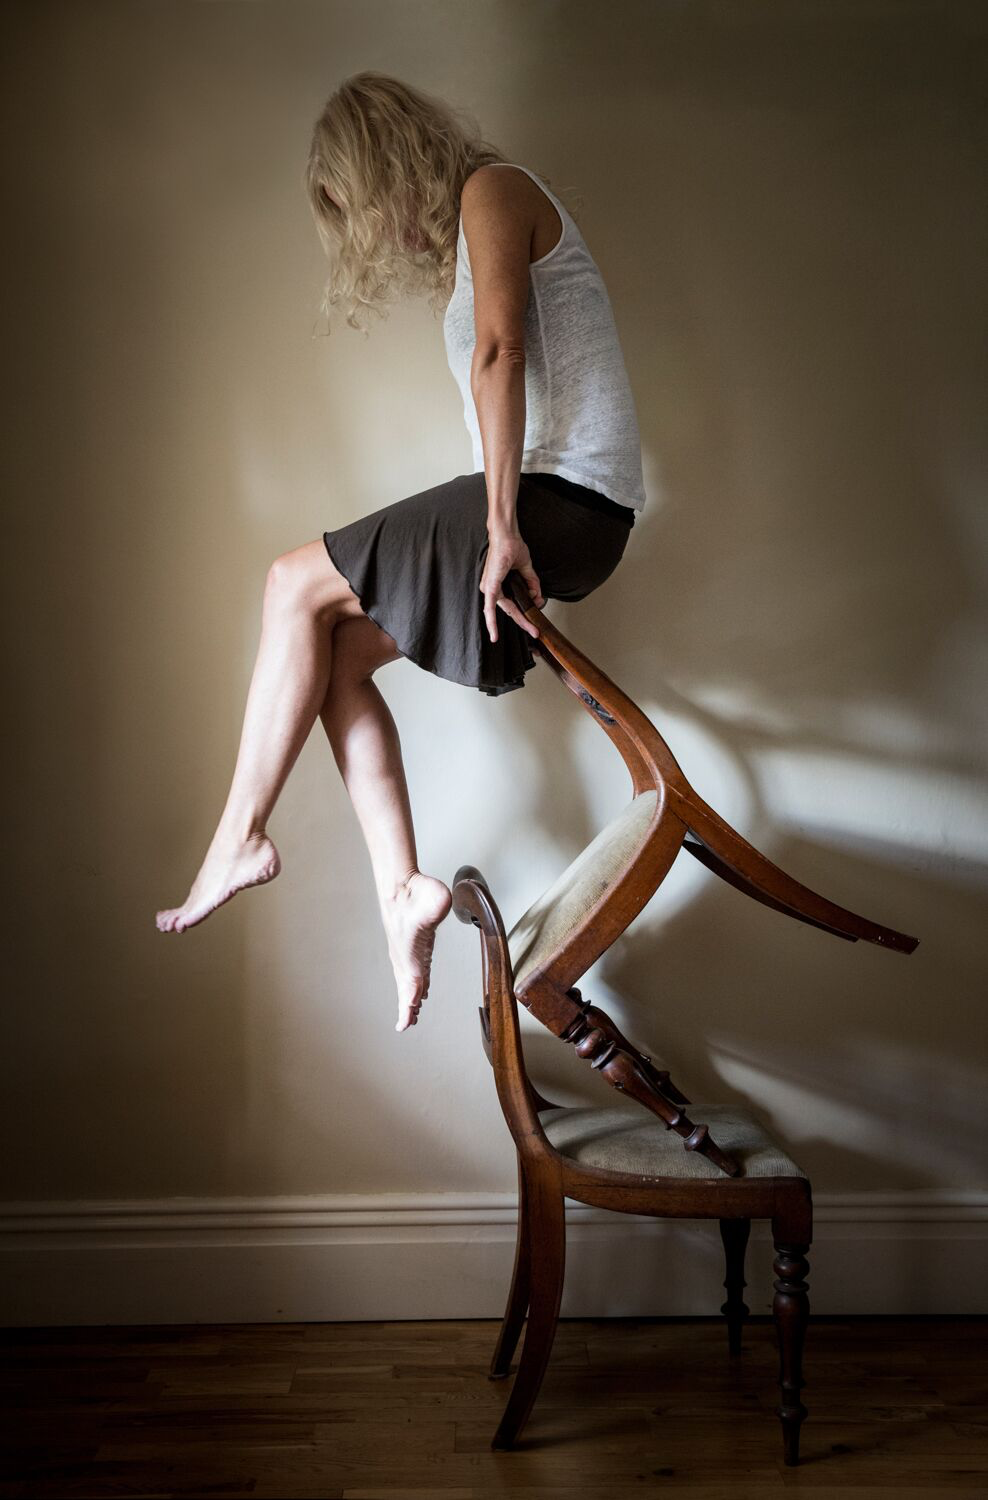 The image shows a woman sat balancing on two chairs precariously stacked on top of each other. From ''In the Mind's Eye'. It depicts anxiety and uncertainty. It illustrates the precarious nature of anxiety; that the slightest thing can set you off kilter. I wanted to challenge the generic head in hands shot, commonly used by the media. I didn't want the series to be too somber. I wanted to incorporate humour and a light-heartedness, to truly represent my experiences.